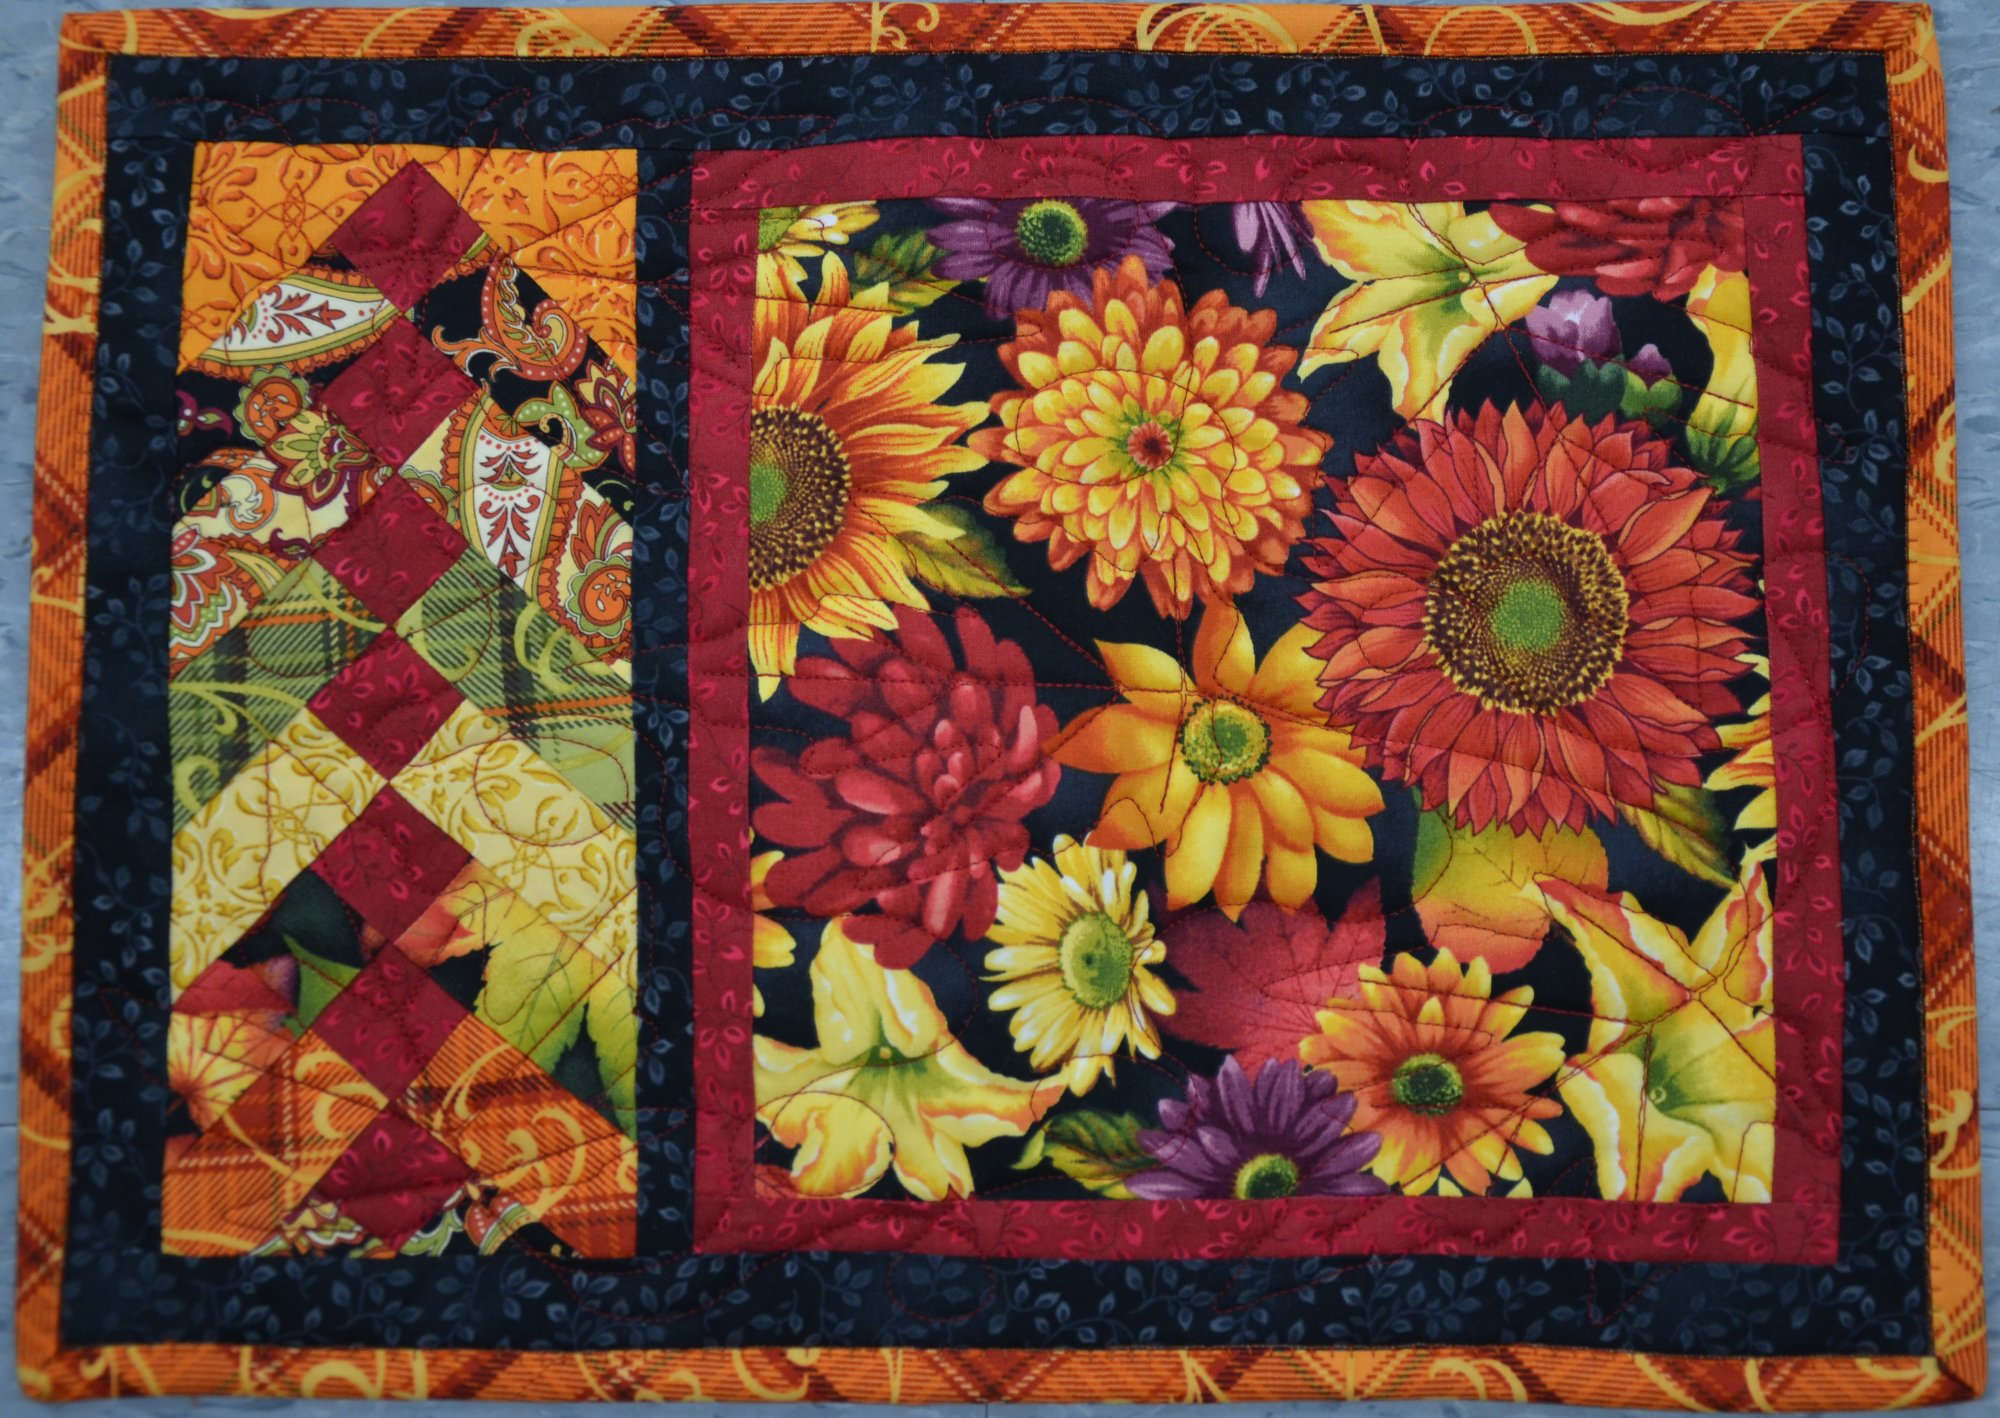 Autumn Time Place Mats (Set of 4) 16 1/2 x 12